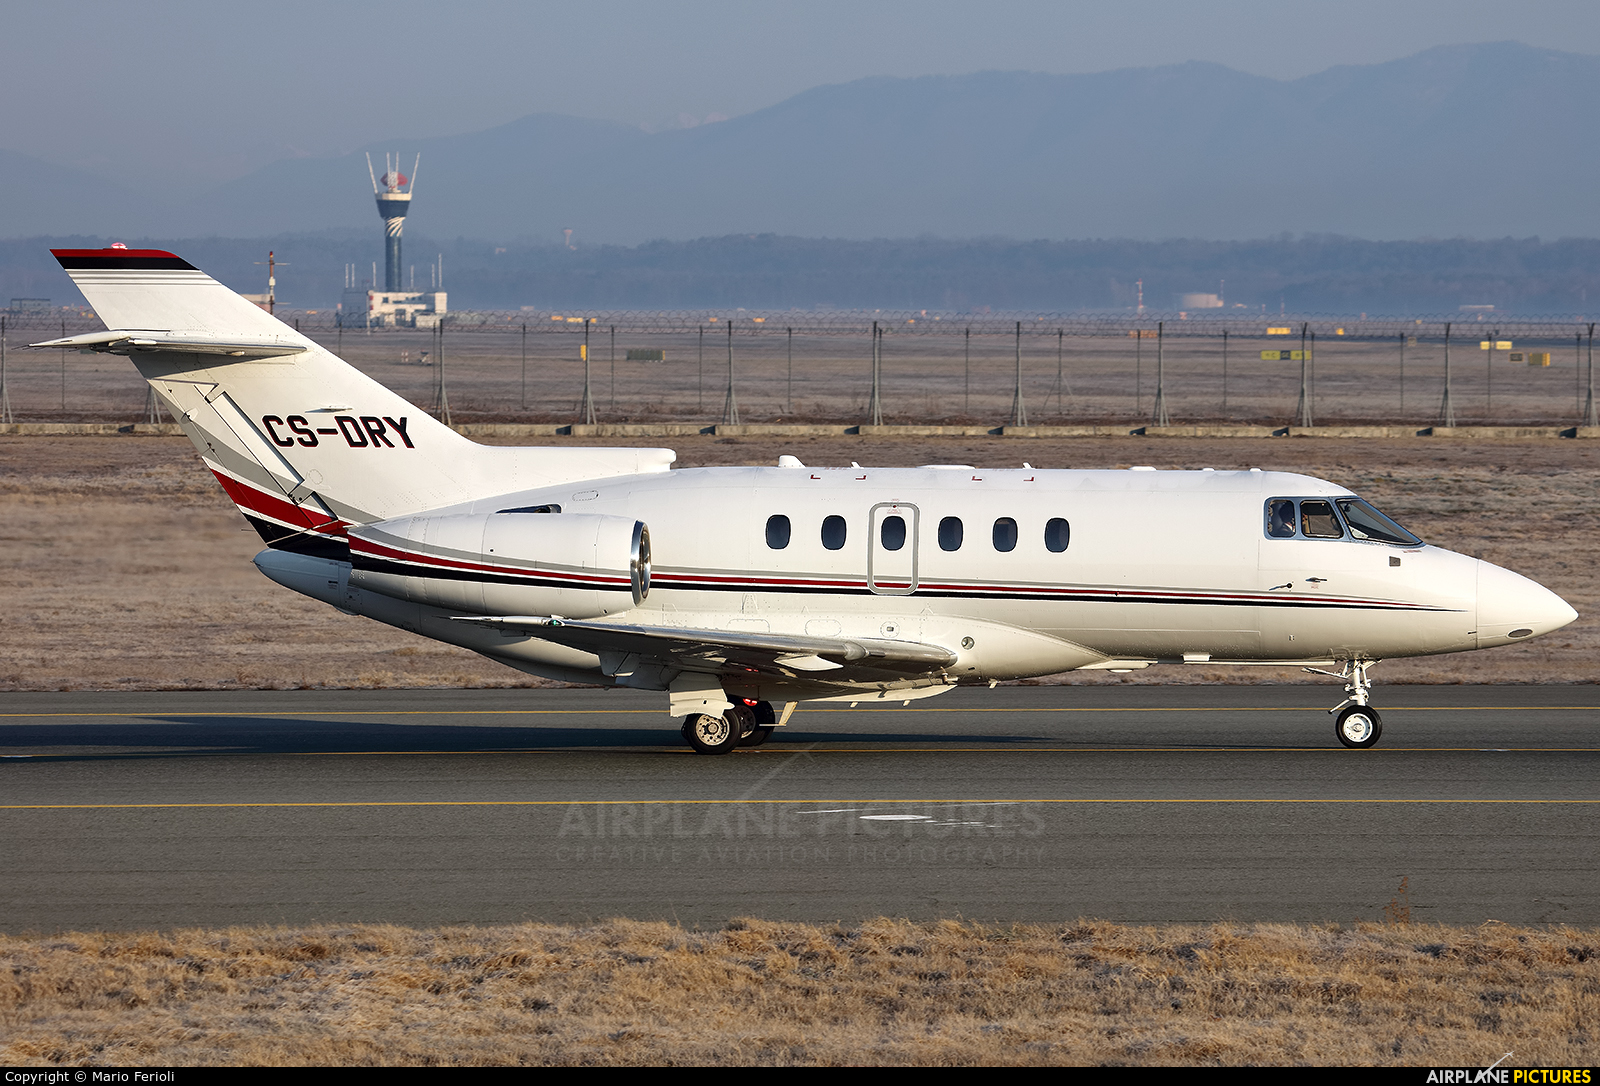 NetJets Europe (Portugal) CS-DRY aircraft at Milan - Malpensa